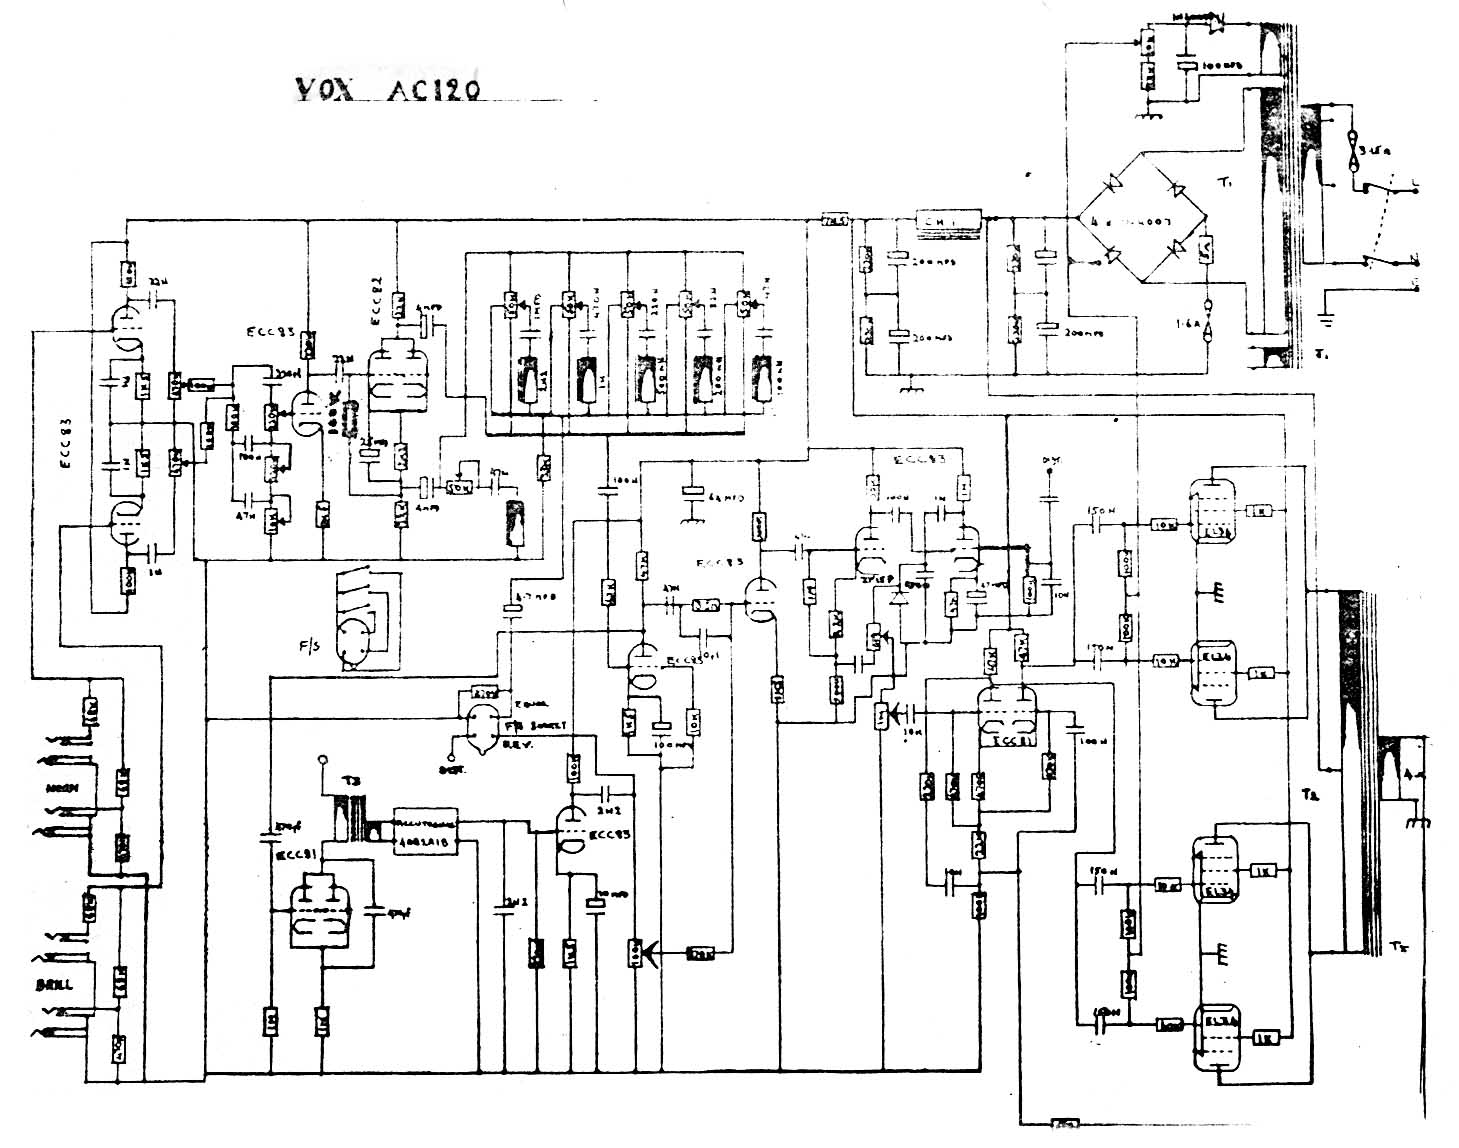 Roland Jc 120 Service Manual on true bypass schematic, egnater rebel 20 schematic, crate 50 tube amp schematic, vox ac4 schematic, fender power chorus schematic, peavey special 130 schematic, looper pedal schematic, 59 bassman schematic, gibson ga-40 schematic, fender tweed champ schematic, marshall super lead schematic, soldano x88r schematic, tube overdrive pedal schematic, vox ac30 schematic, marshall plexi schematic, marshall jcm 800 schematic, dumble schematic, frontman 25r schematic, marshall 1974x schematic, vox ac30cc schematic,